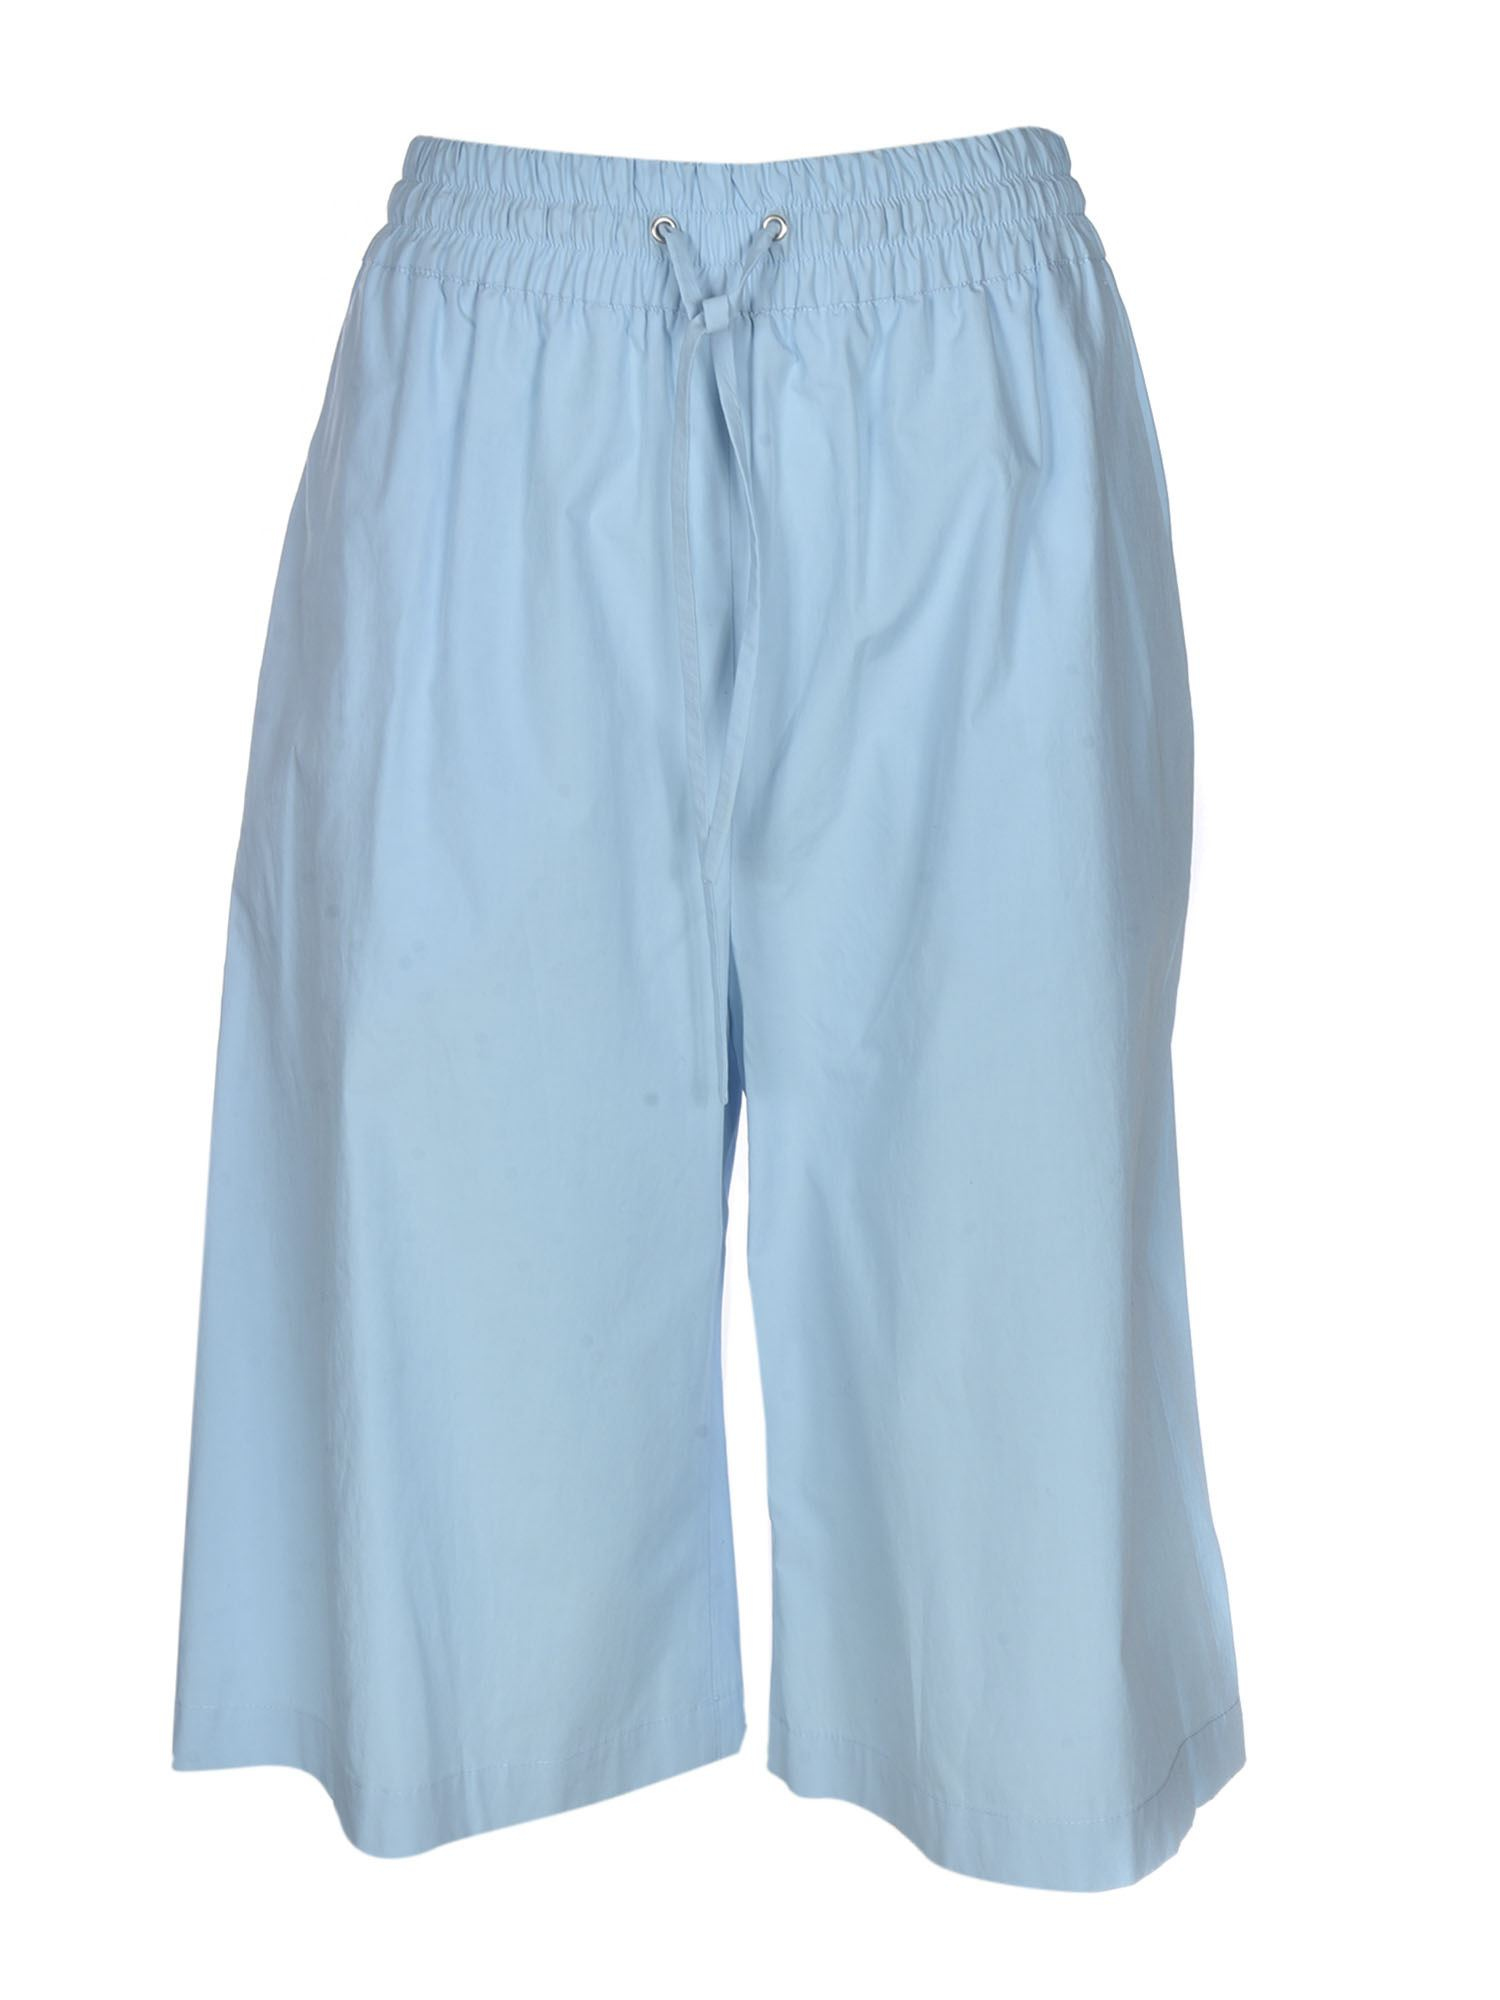 Msgm HIGH WAIST BERMUDA SHORTS IN LIGHT BLUE